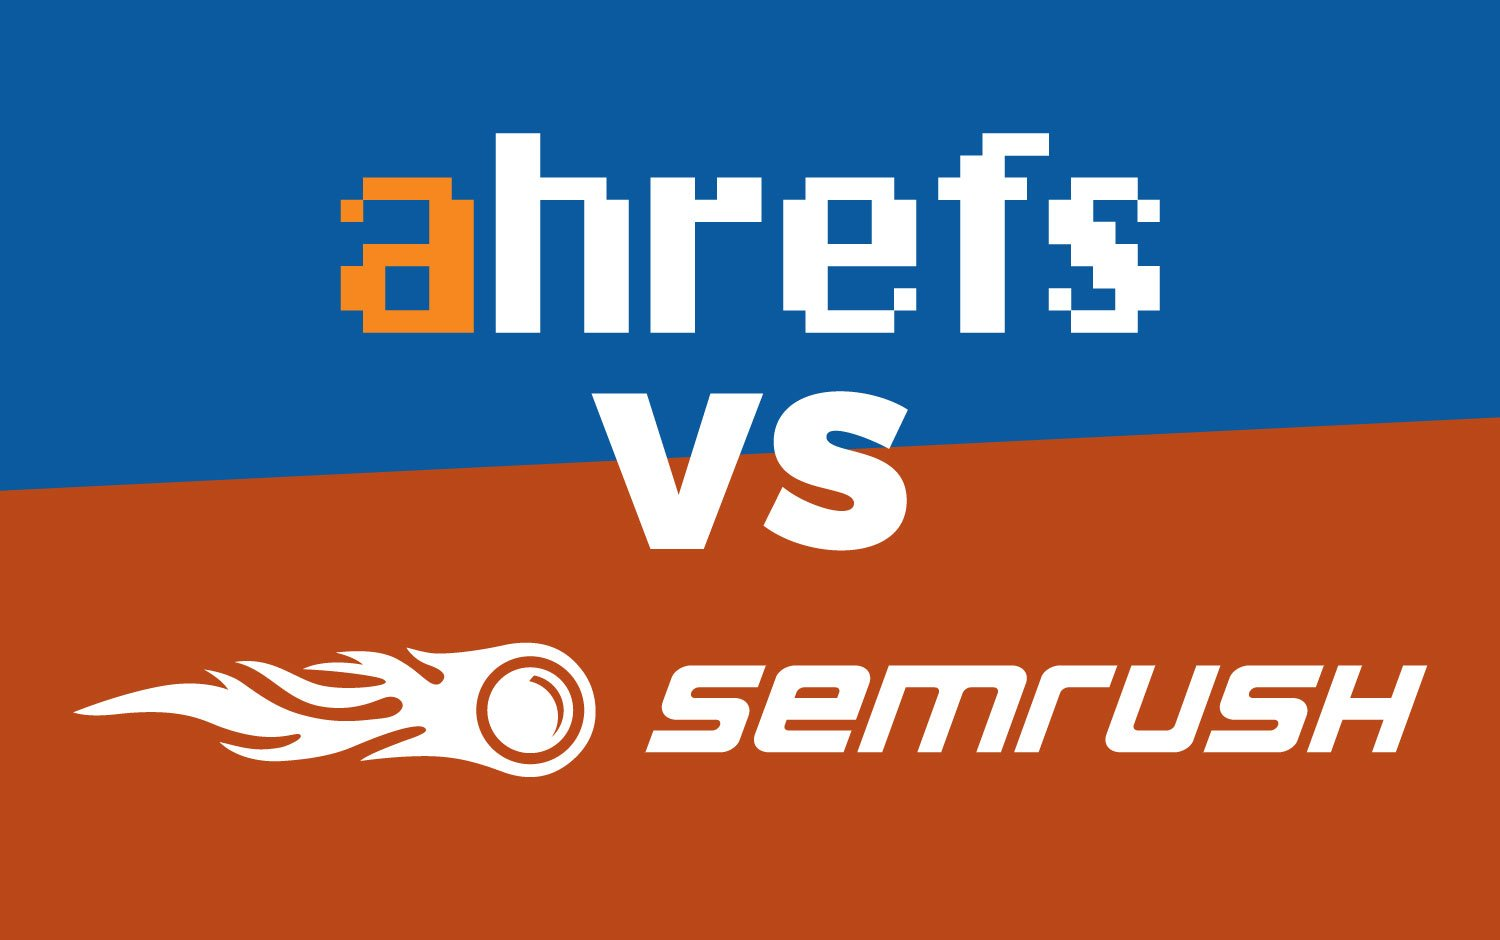 Rumored Buzz on Semrush Vs. Ahrefs